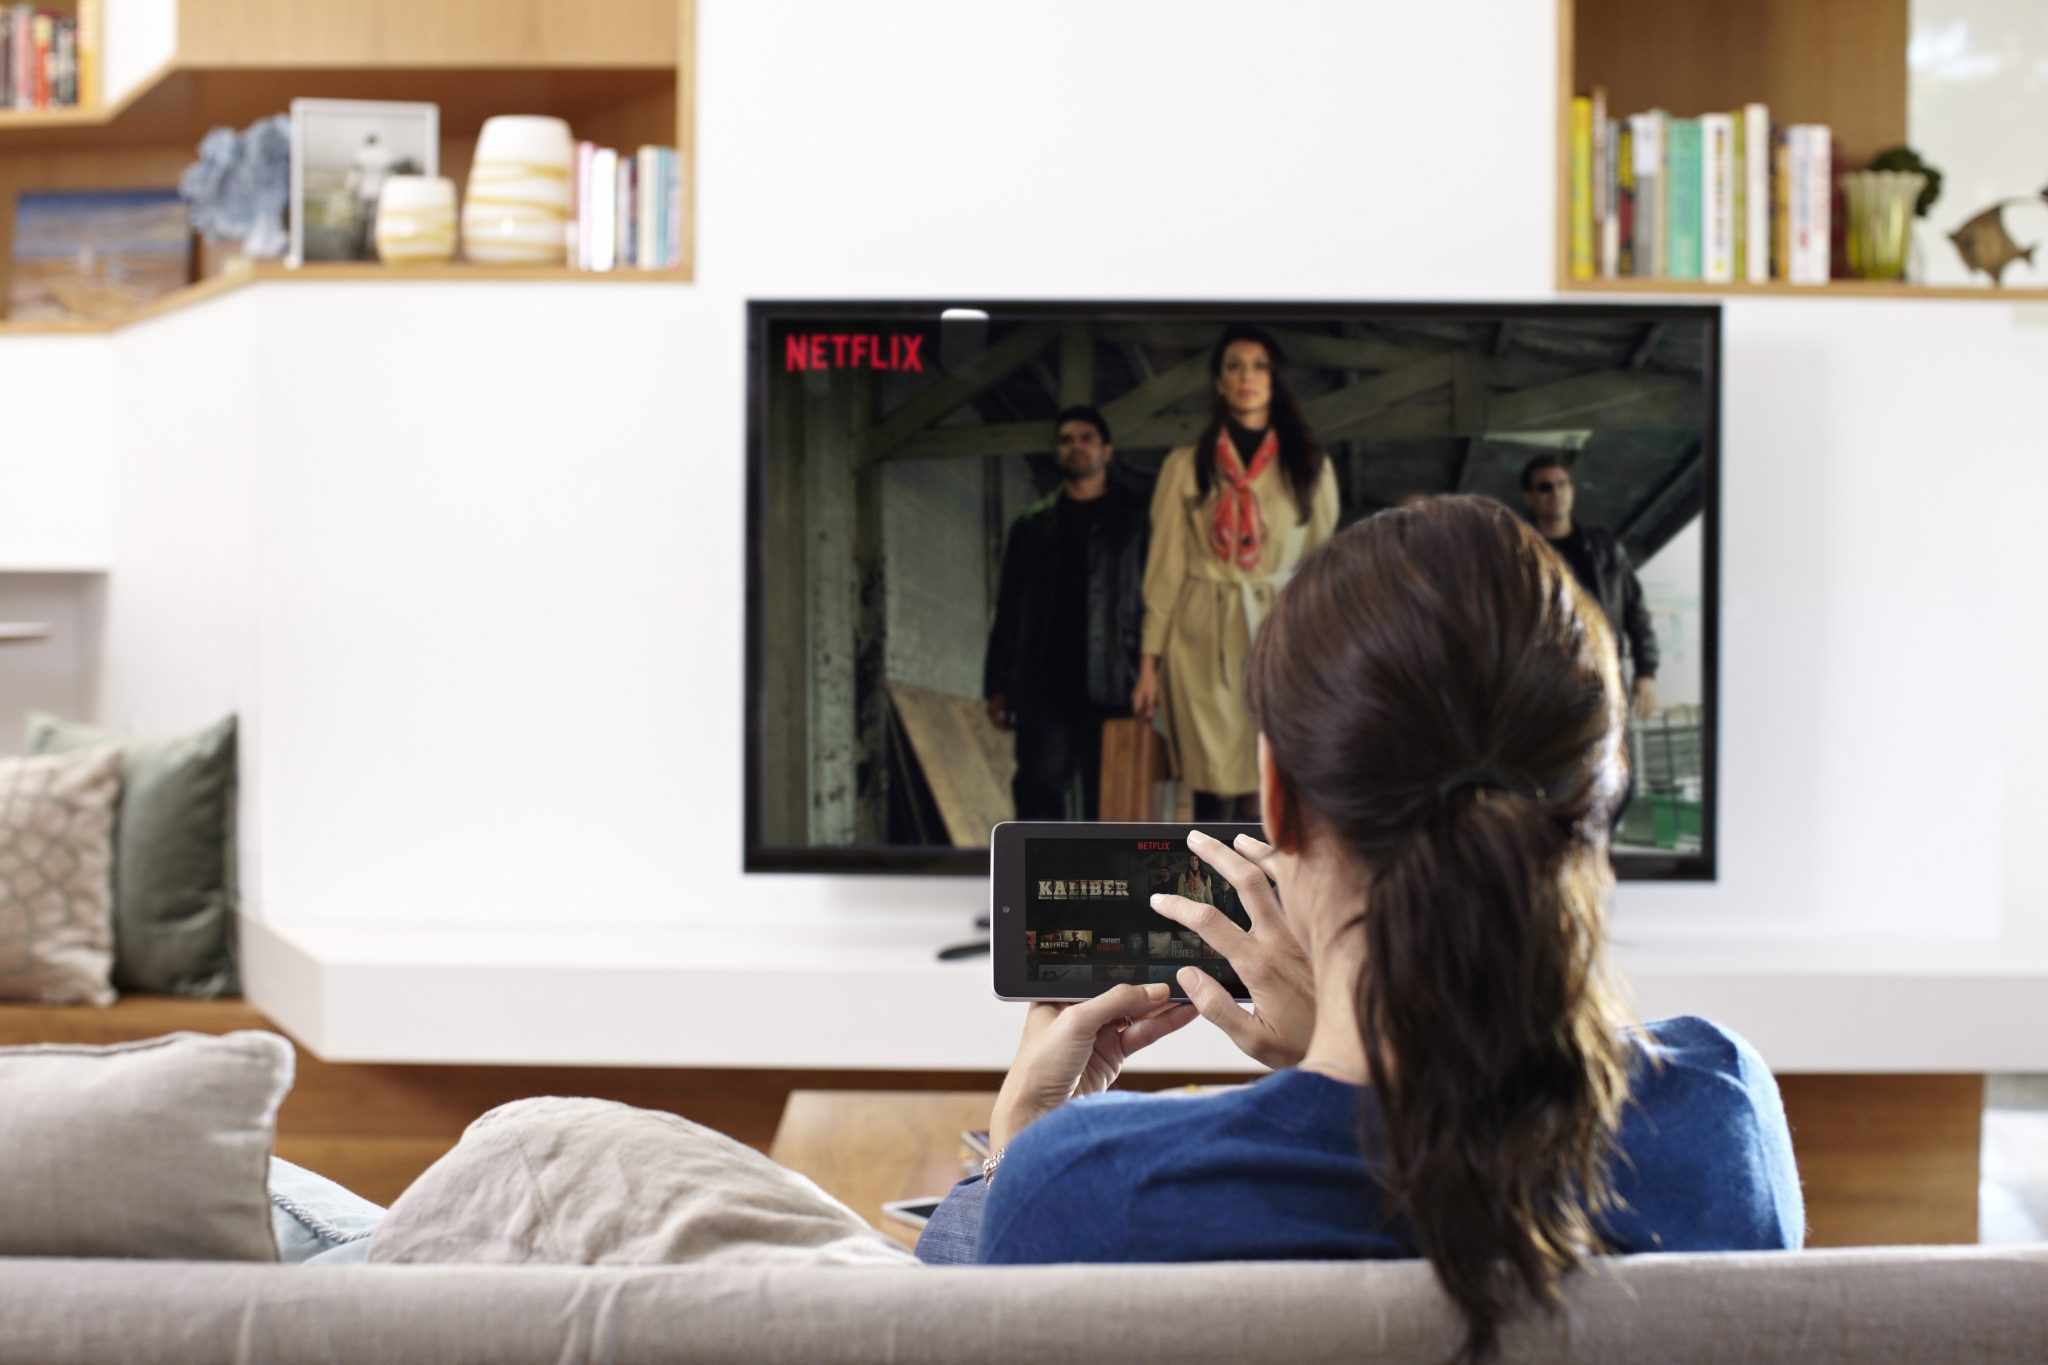 Number of Netflix Subscriptions in US Now Same as Cable